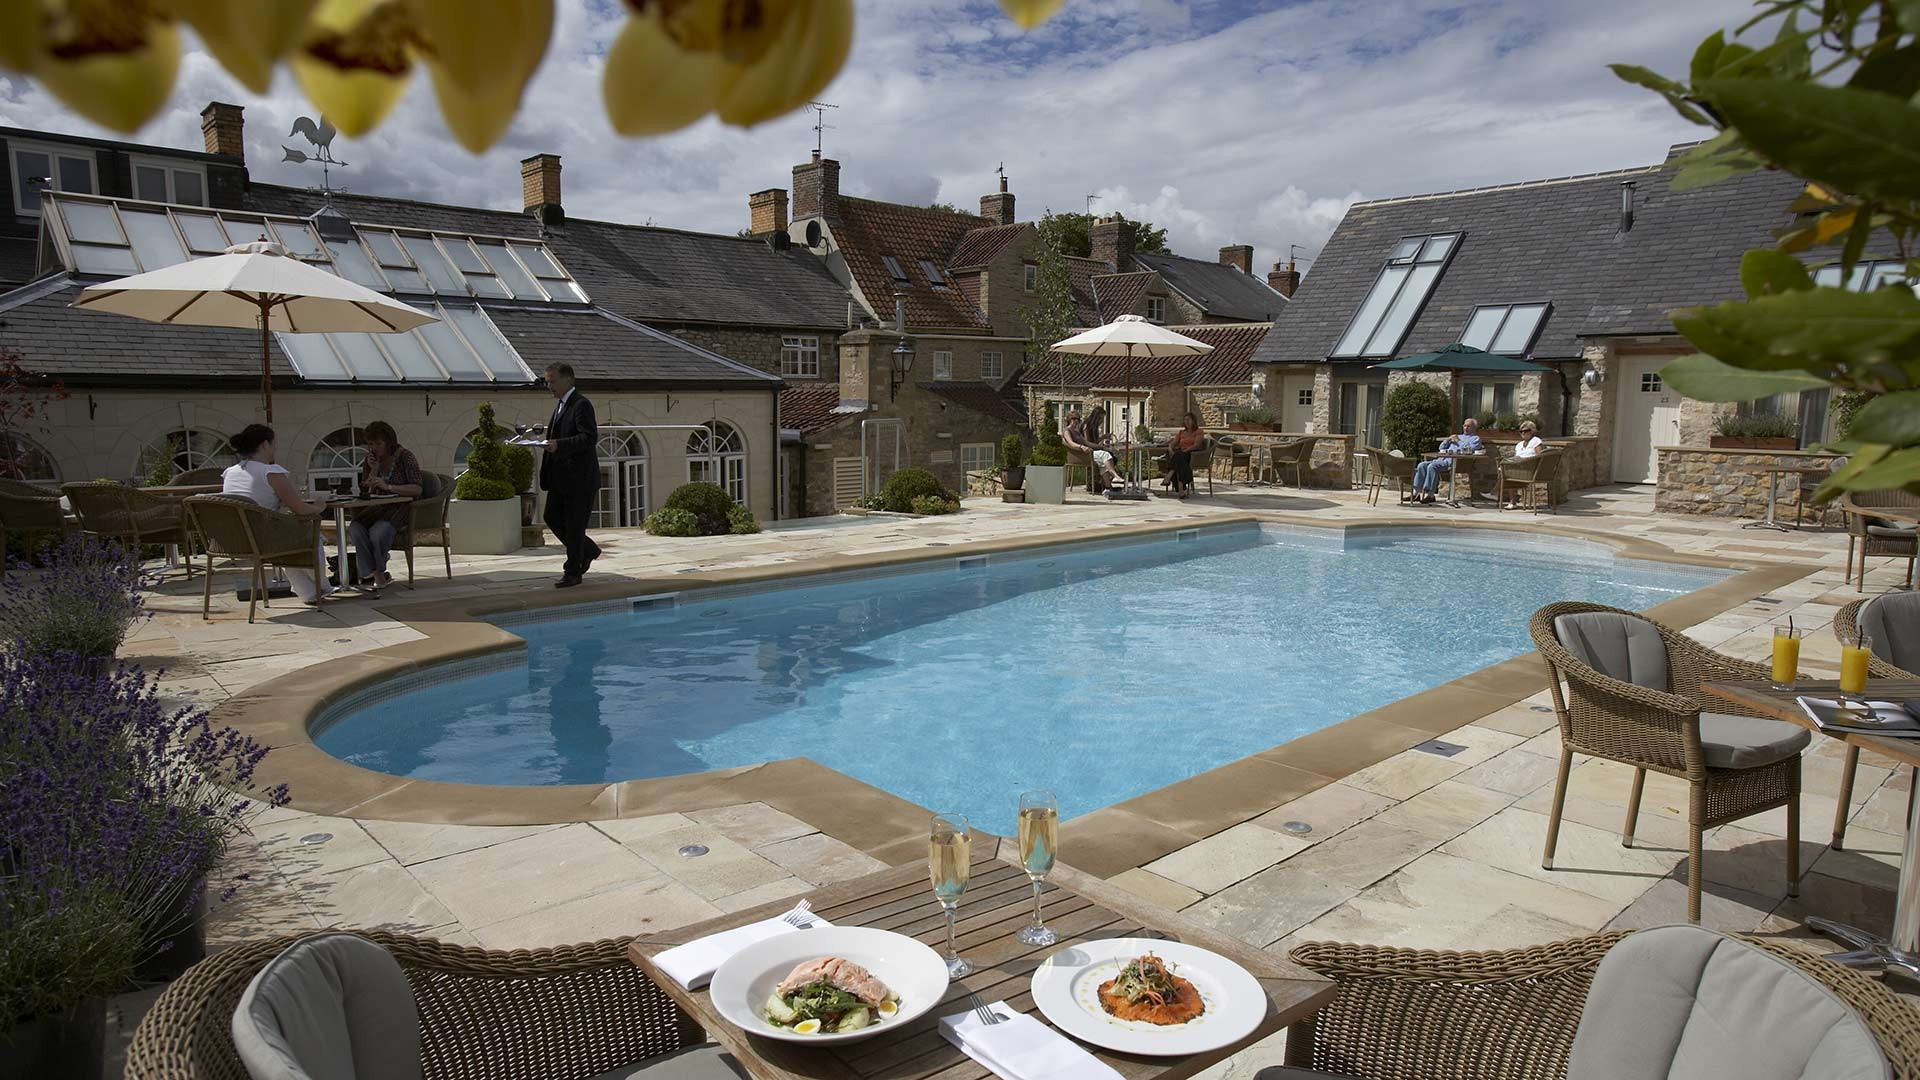 Verbena Spa at Feversham Arms Hotel, North Yorkshire